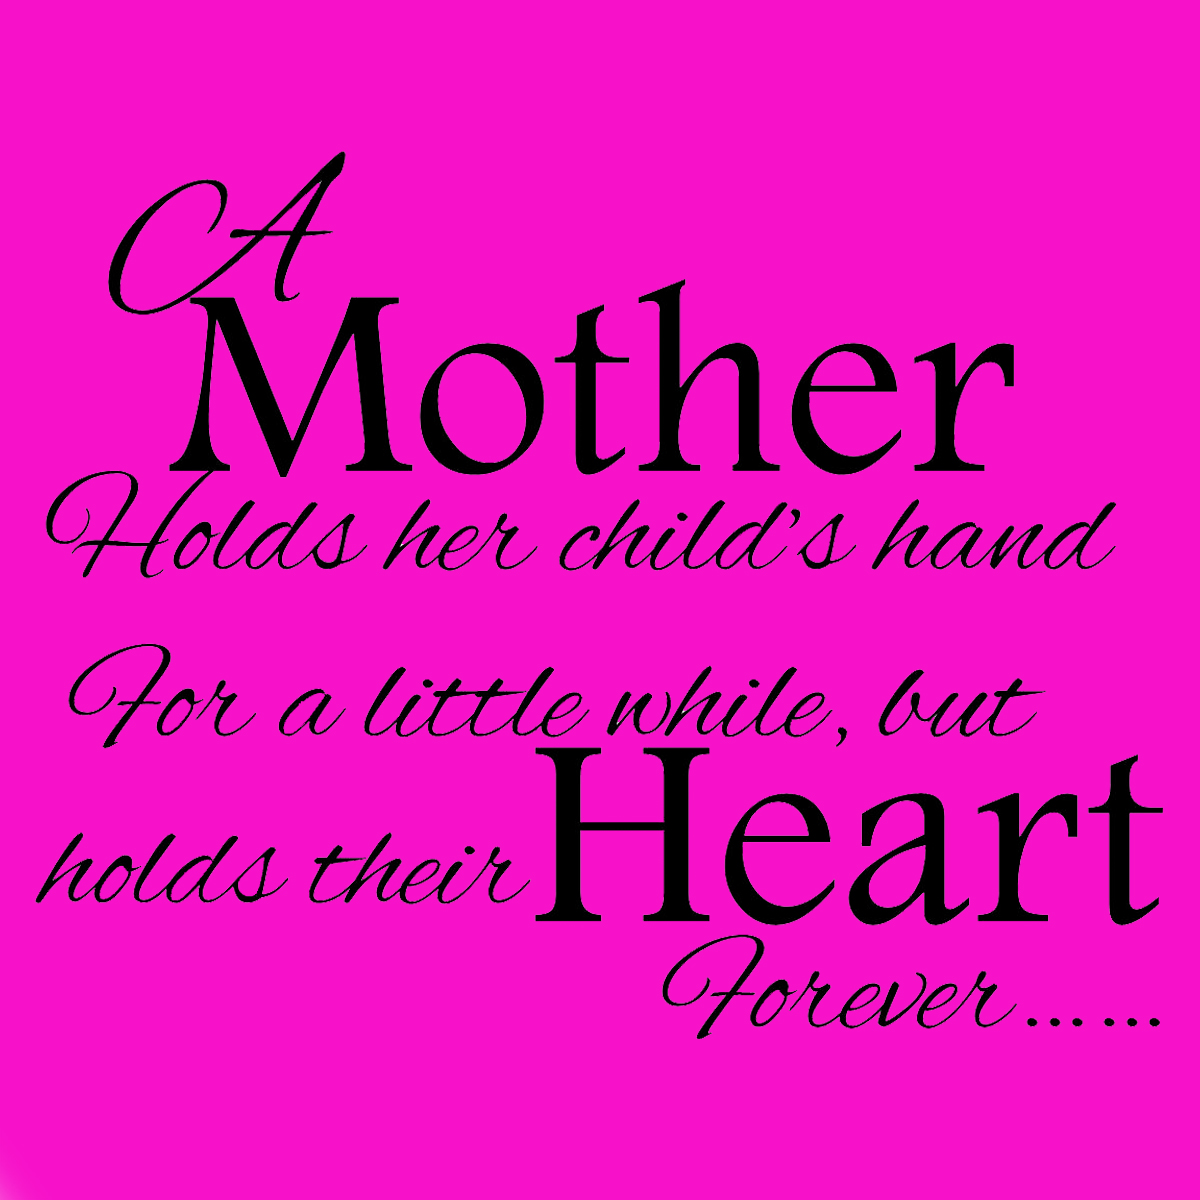 Facebook Quotes And Saying: Mothers Day Quotes For Facebook. QuotesGram